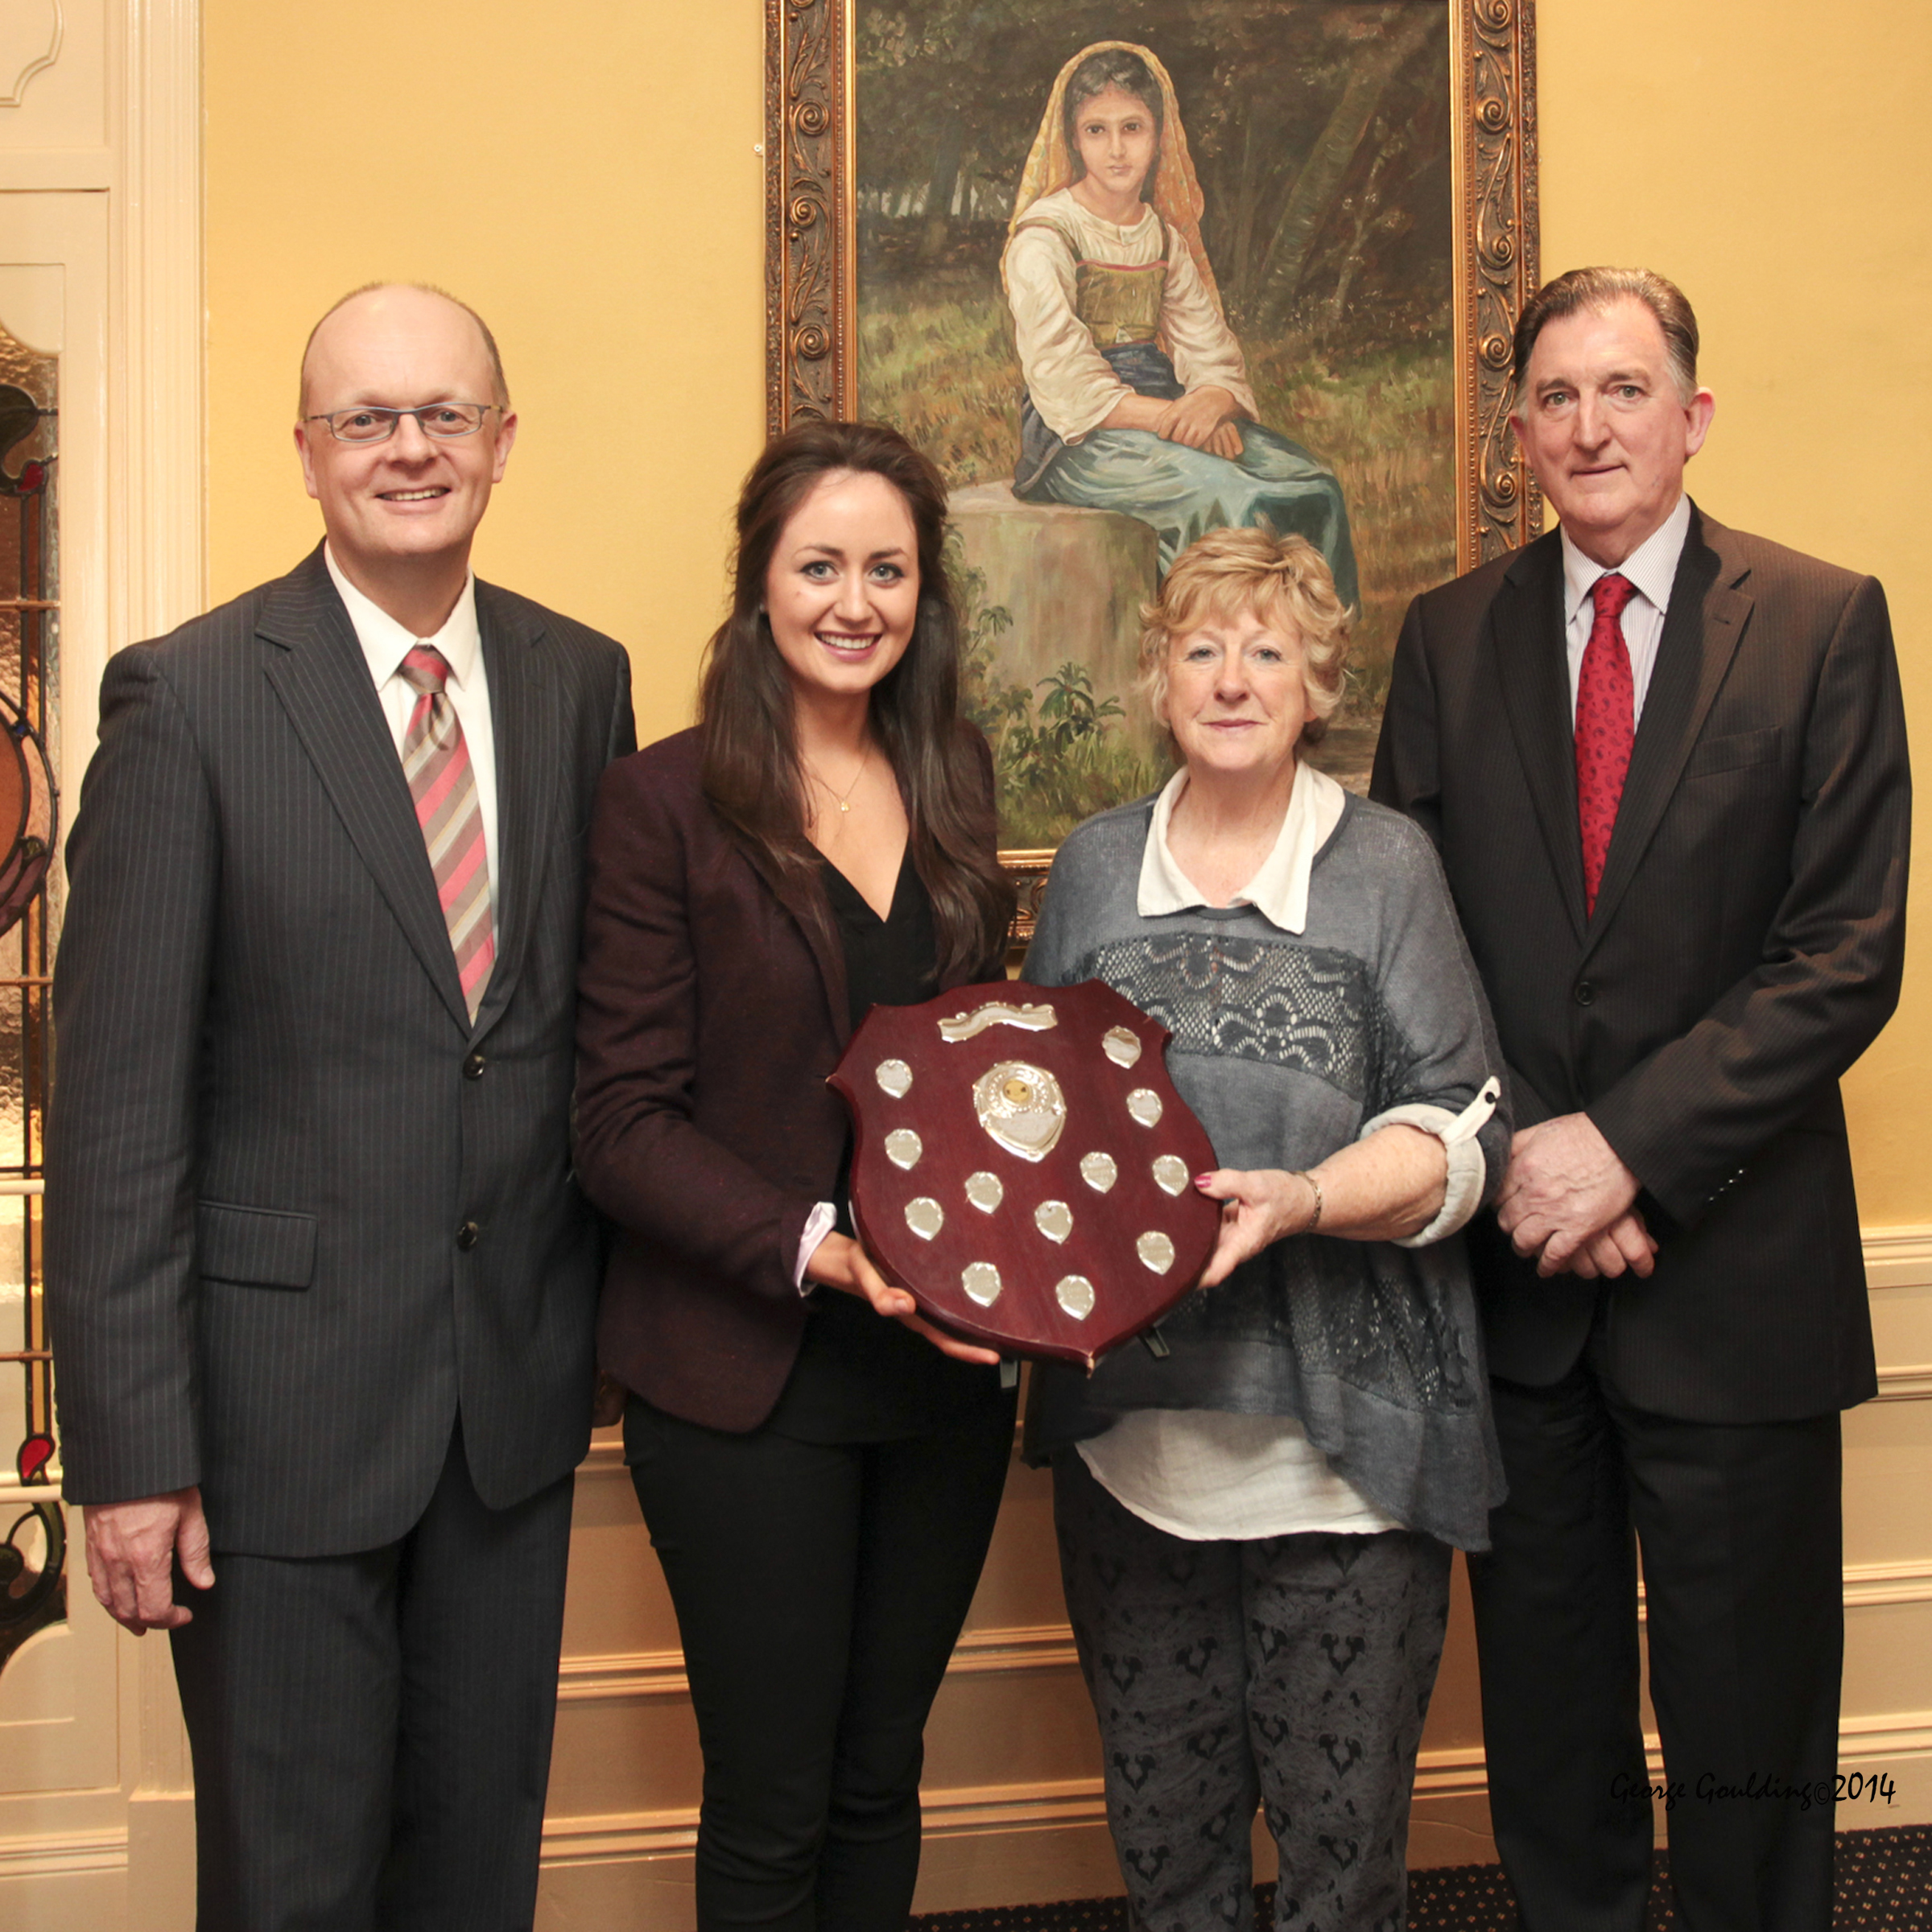 Dr Thomas O'Toole, Head of School of Business, Edwina McGrath, Award Winner, Ann & Liam Cusack, Granville Hotel Sponsor